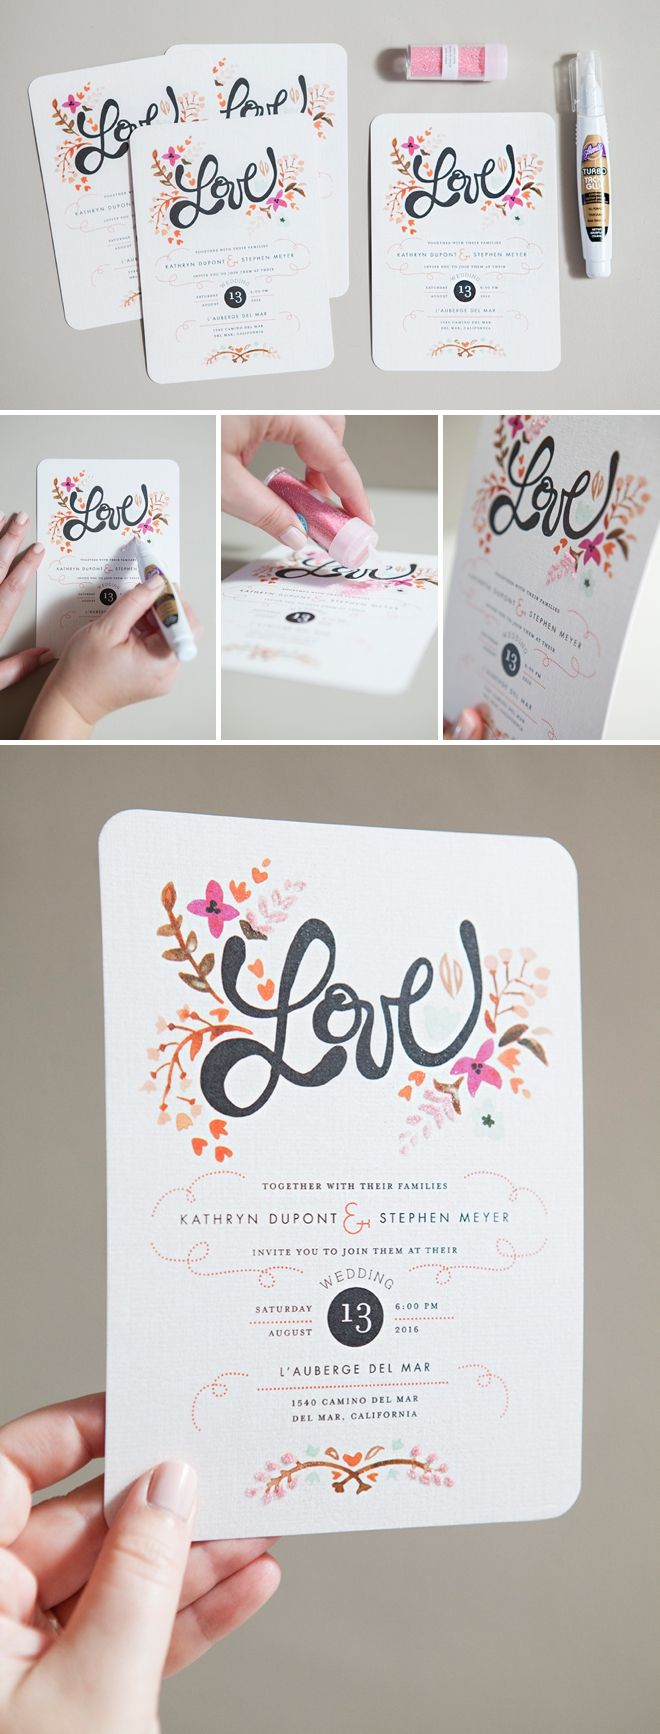 DIY Wedding // How to hand glitter 'store bought' wedding invitations!